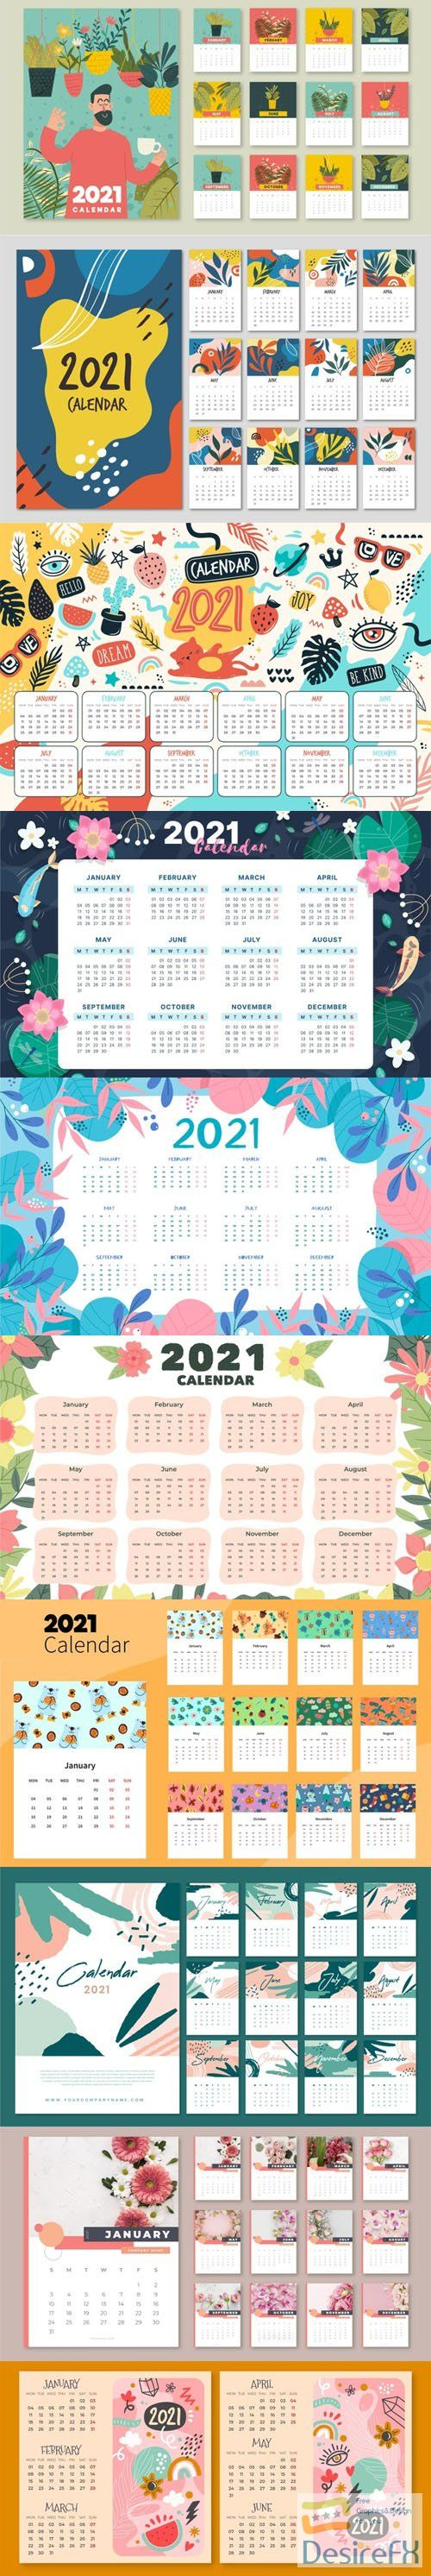 10 Hand-Drawn Illustrated 2021 Calendars Templates in Vector